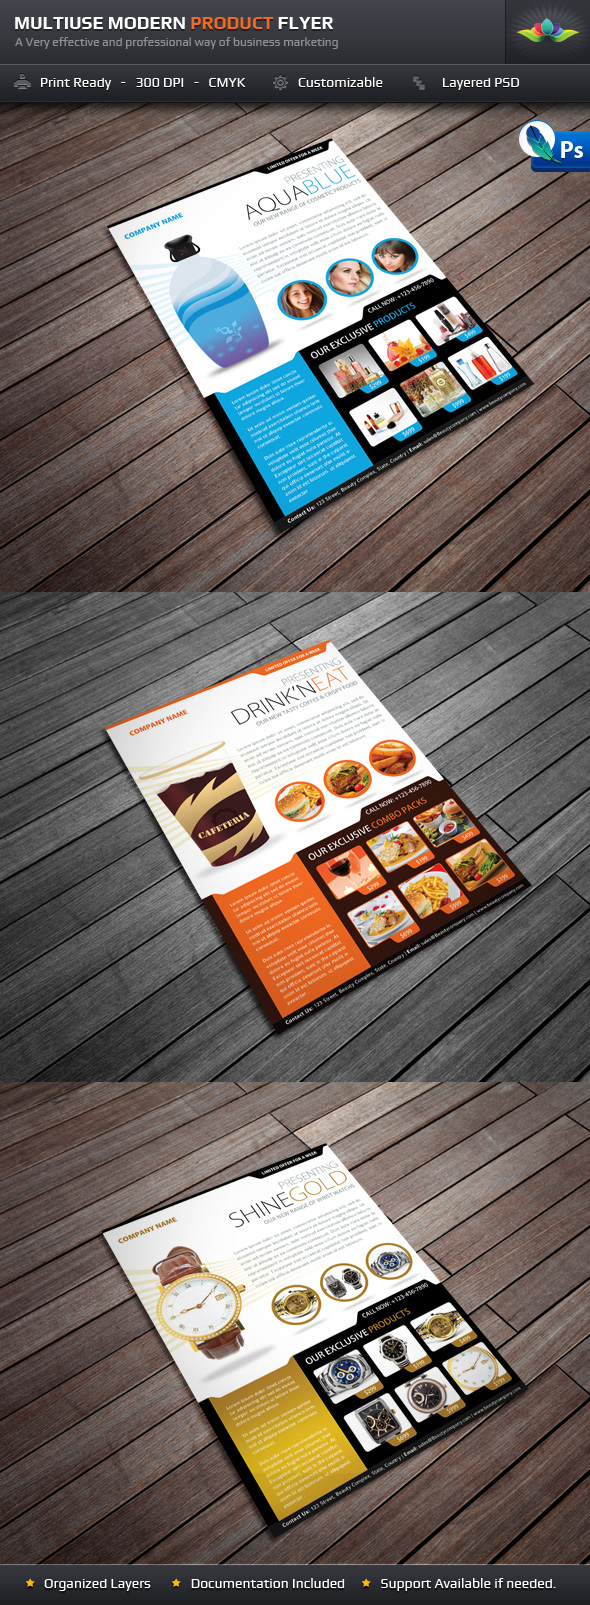 Multiuse Modern Product Flyer by Saptarang